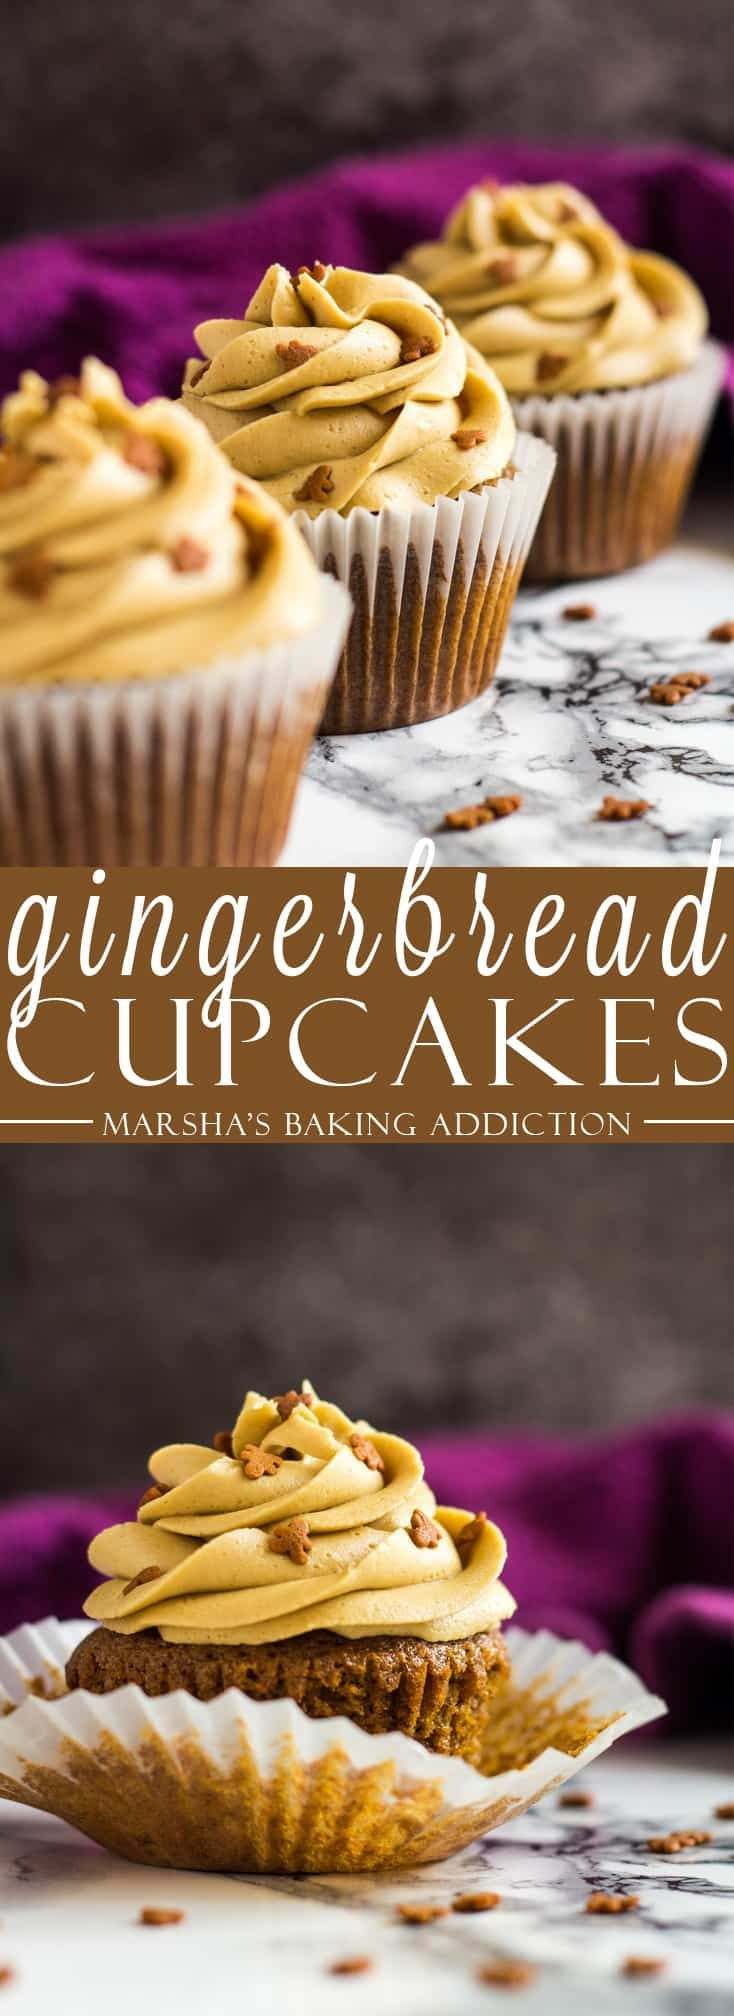 Gingerbread Cupcakes - Deliciously moist and fluffy gingerbread cupcakes that are loaded with flavour, and topped with a ginger buttercream frosting! Recipe on marshasbakingaddiction.com #ginger #gingerbread #cupcakes #christmas